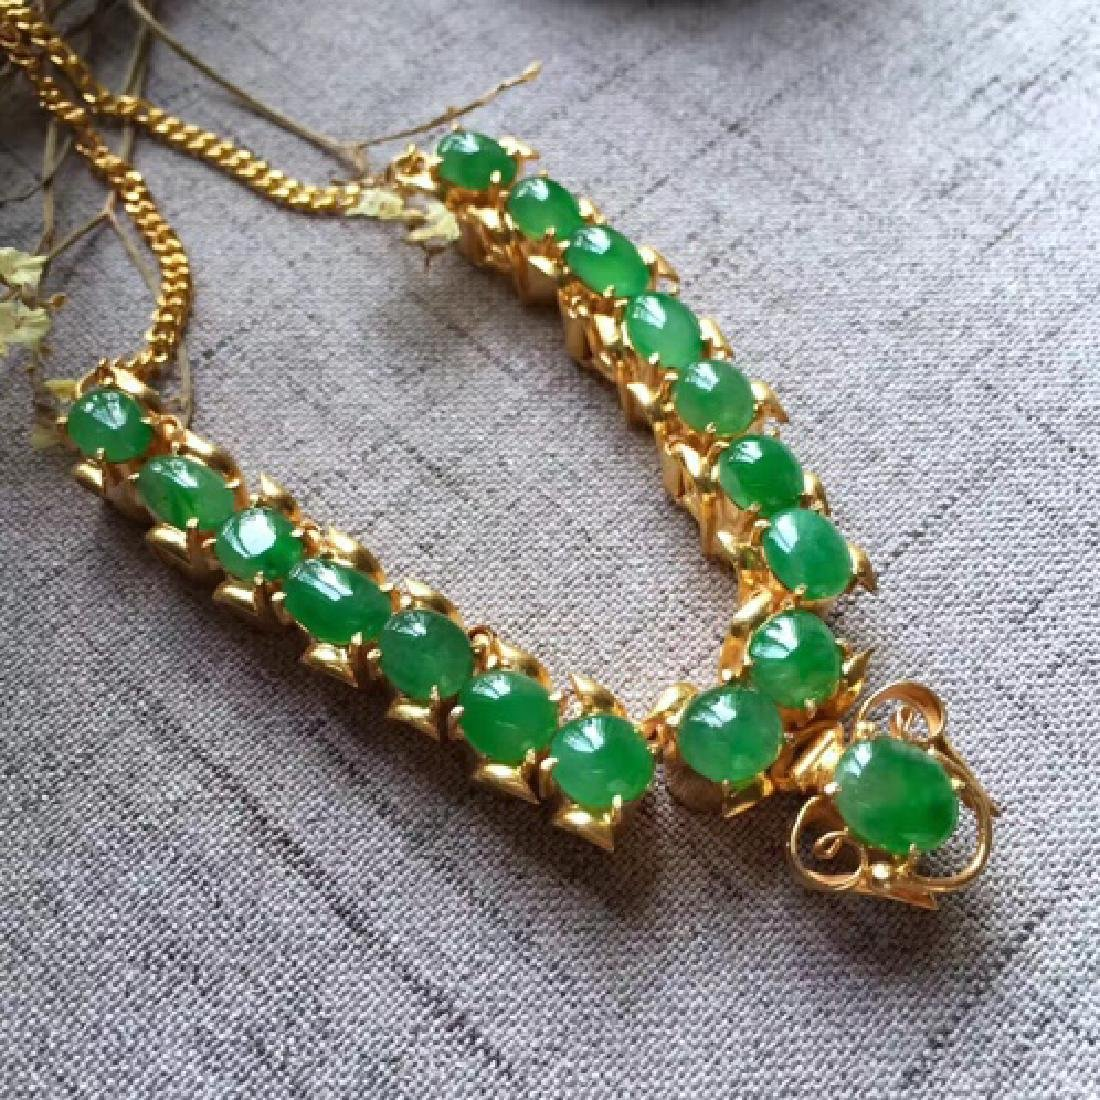 A NATURAL EGG-SHAPED PINGGUOLV JADEITE NECKLACE - 3